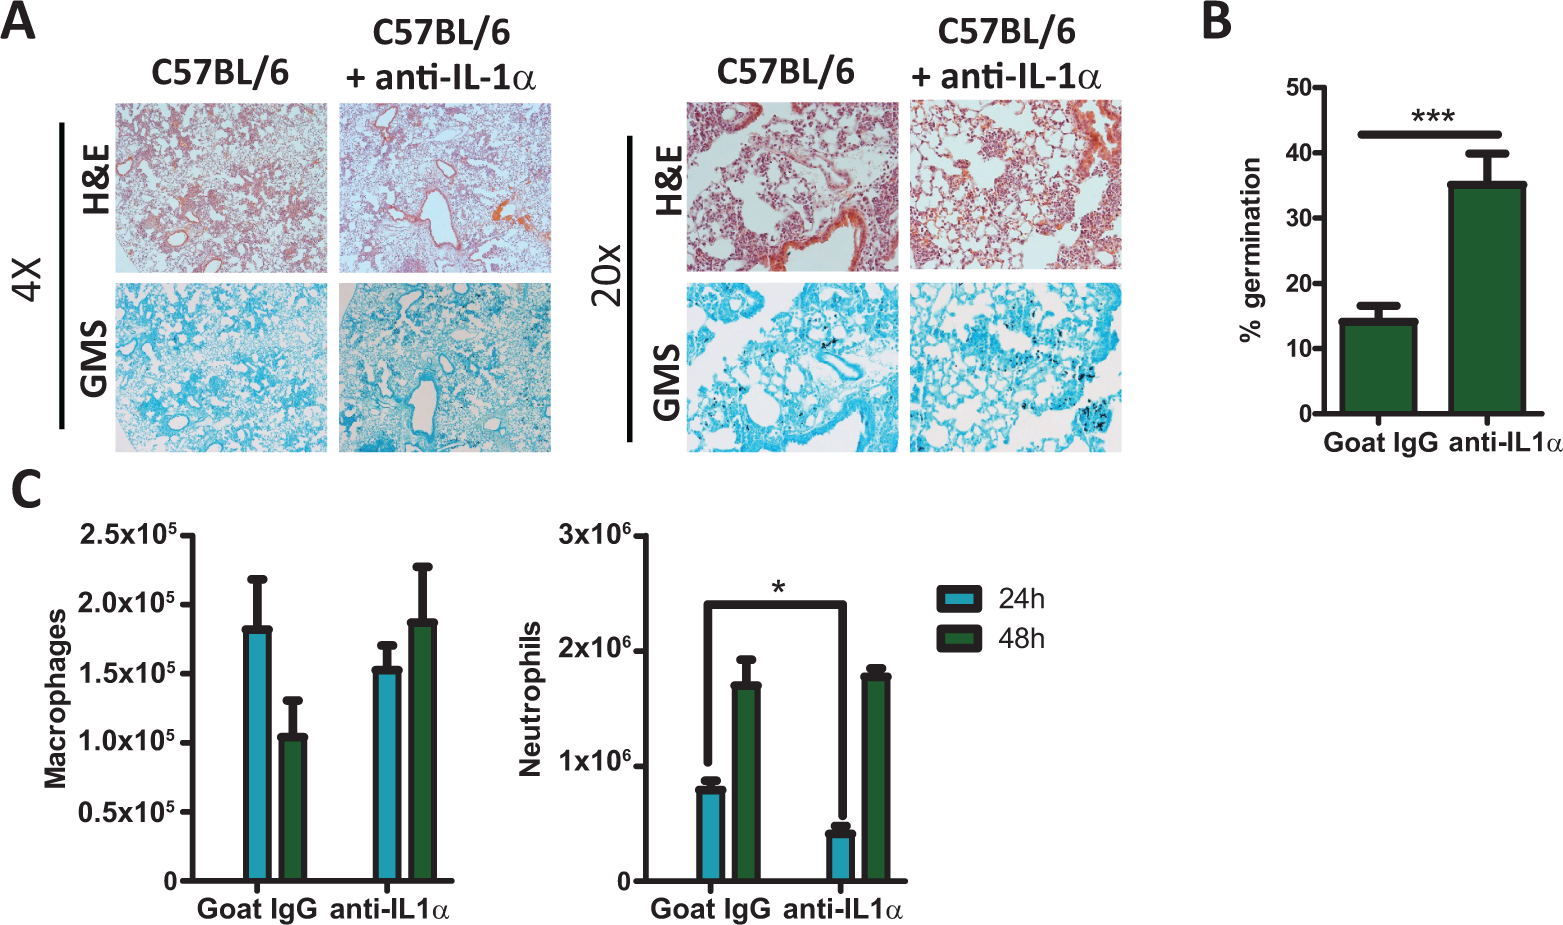 C57BL/6 mice treated with IL-1α neutralizing antibody were more susceptible to <i>Aspergillus fumigatus</i> infection.